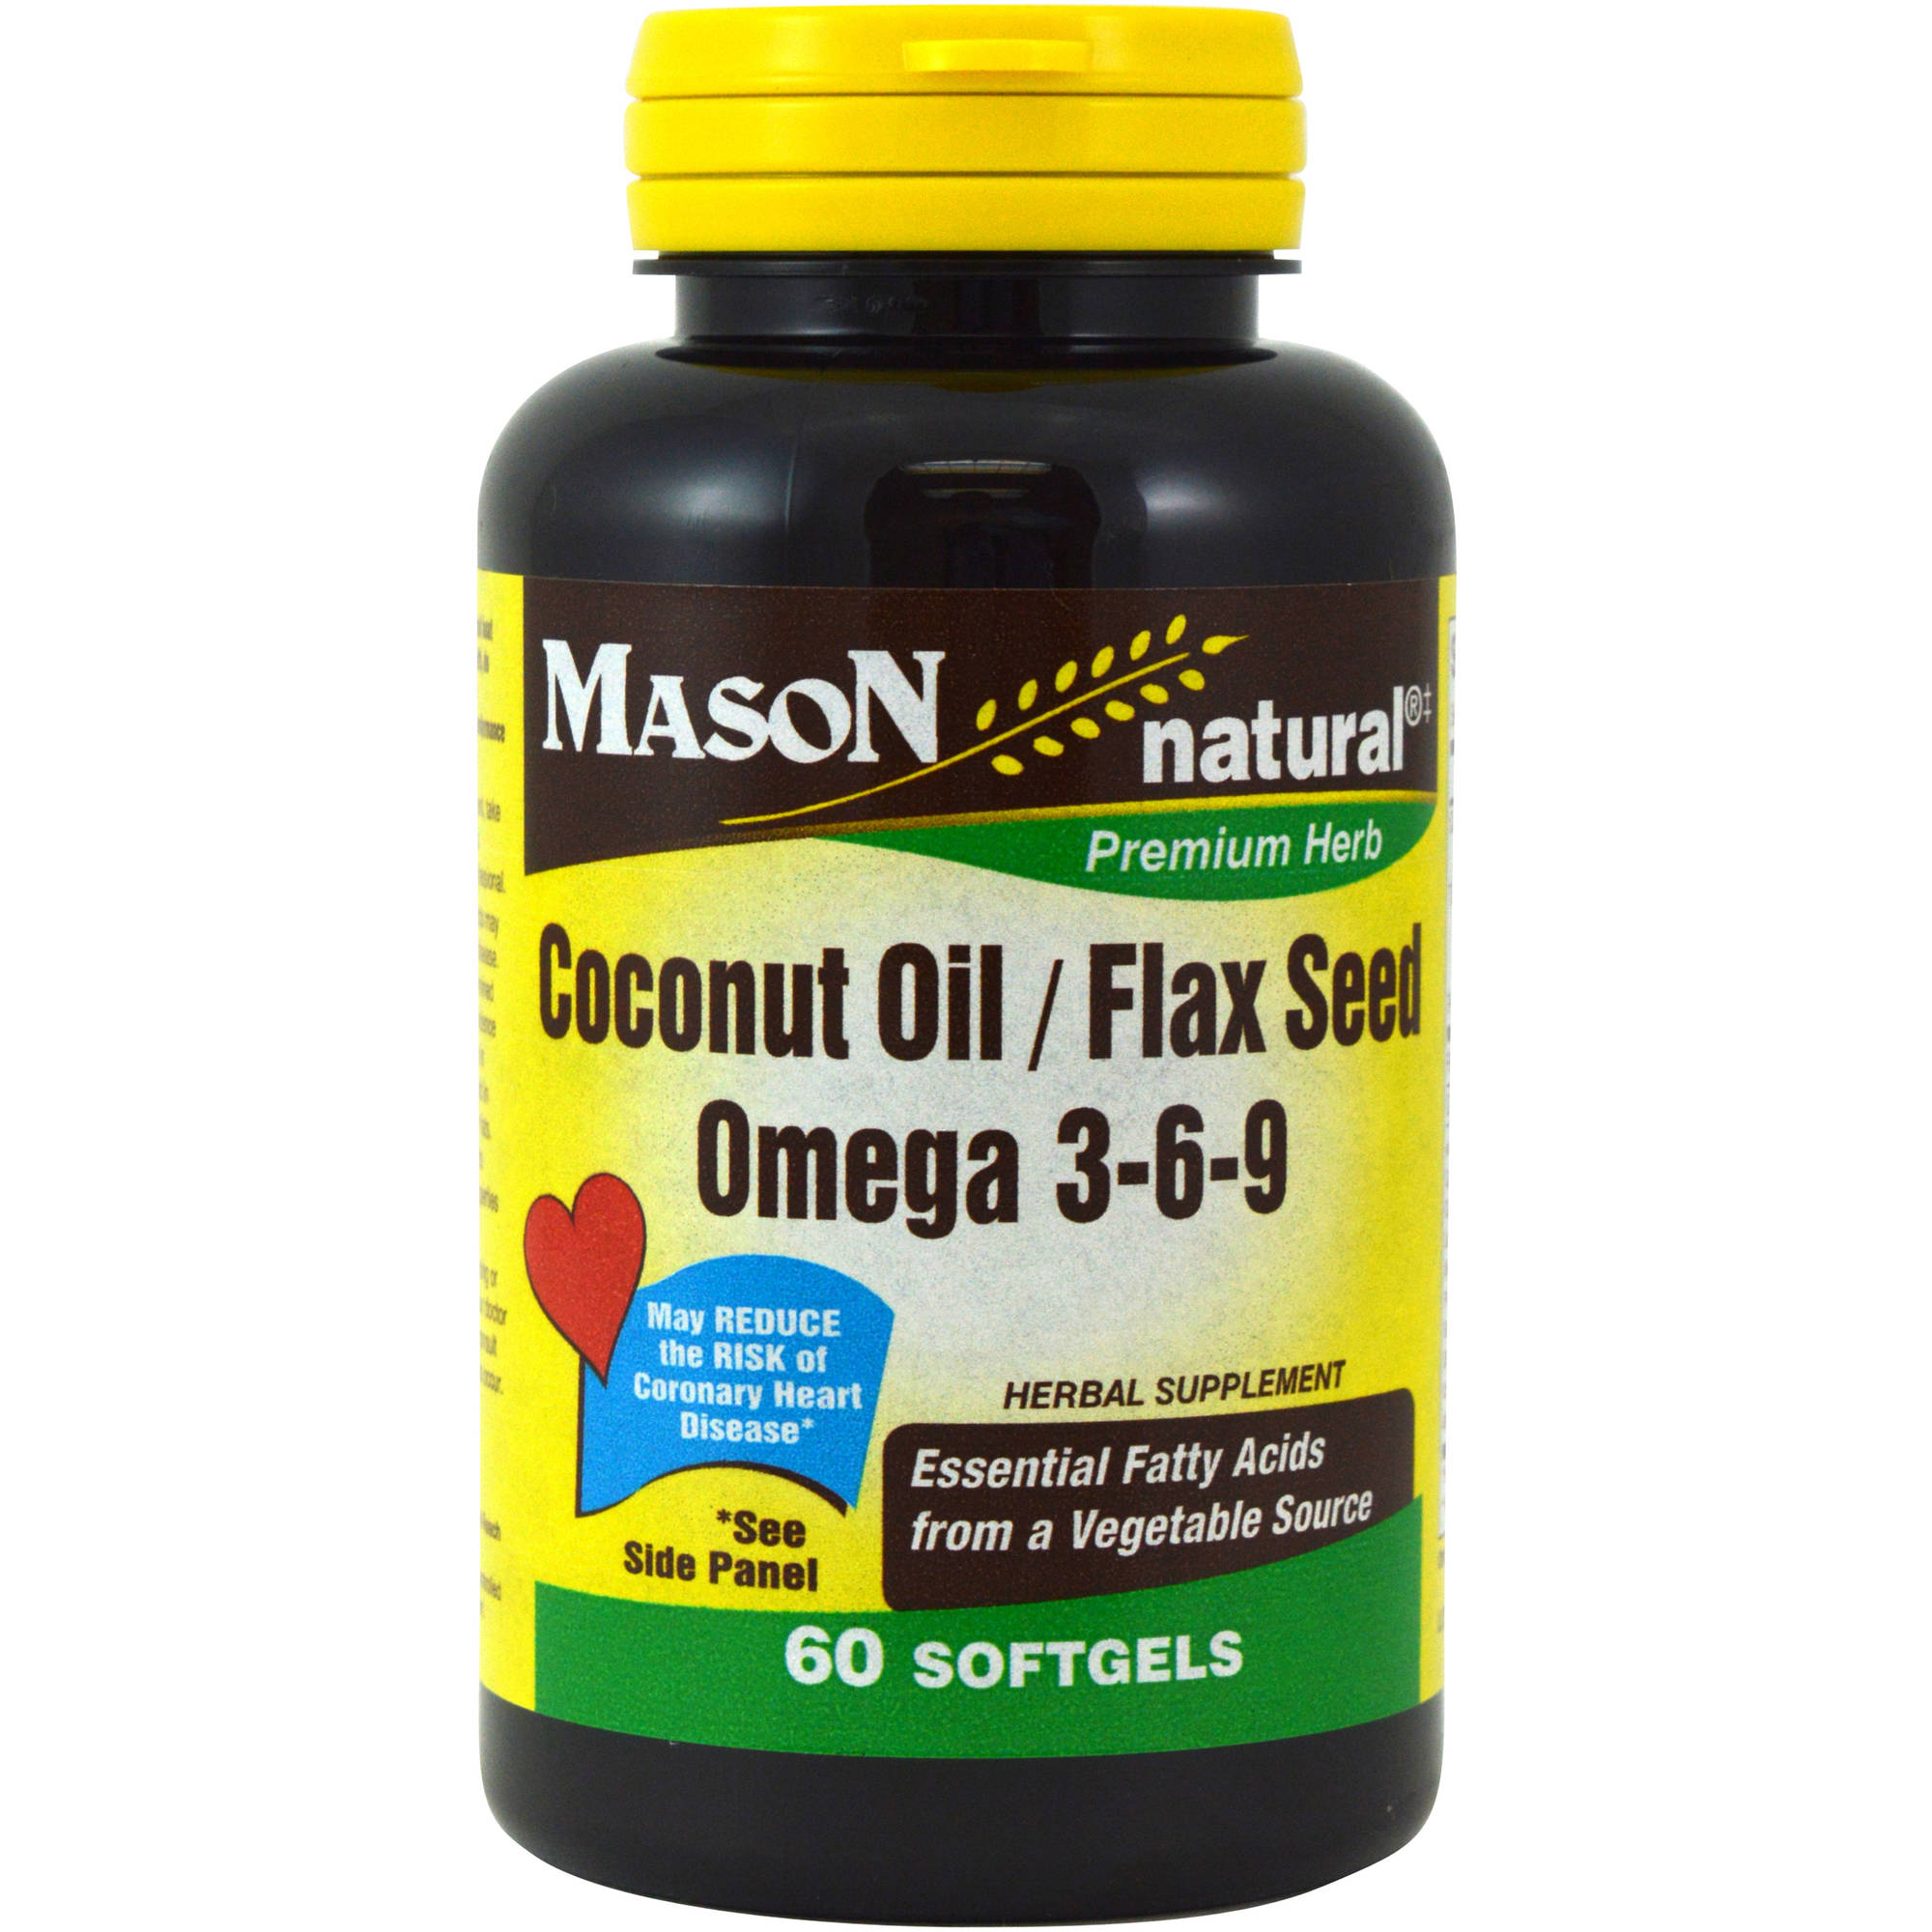 Mason natural Coconut Oil/Flax See/Omega 3-6-9 Herbal Supplement, 60 count